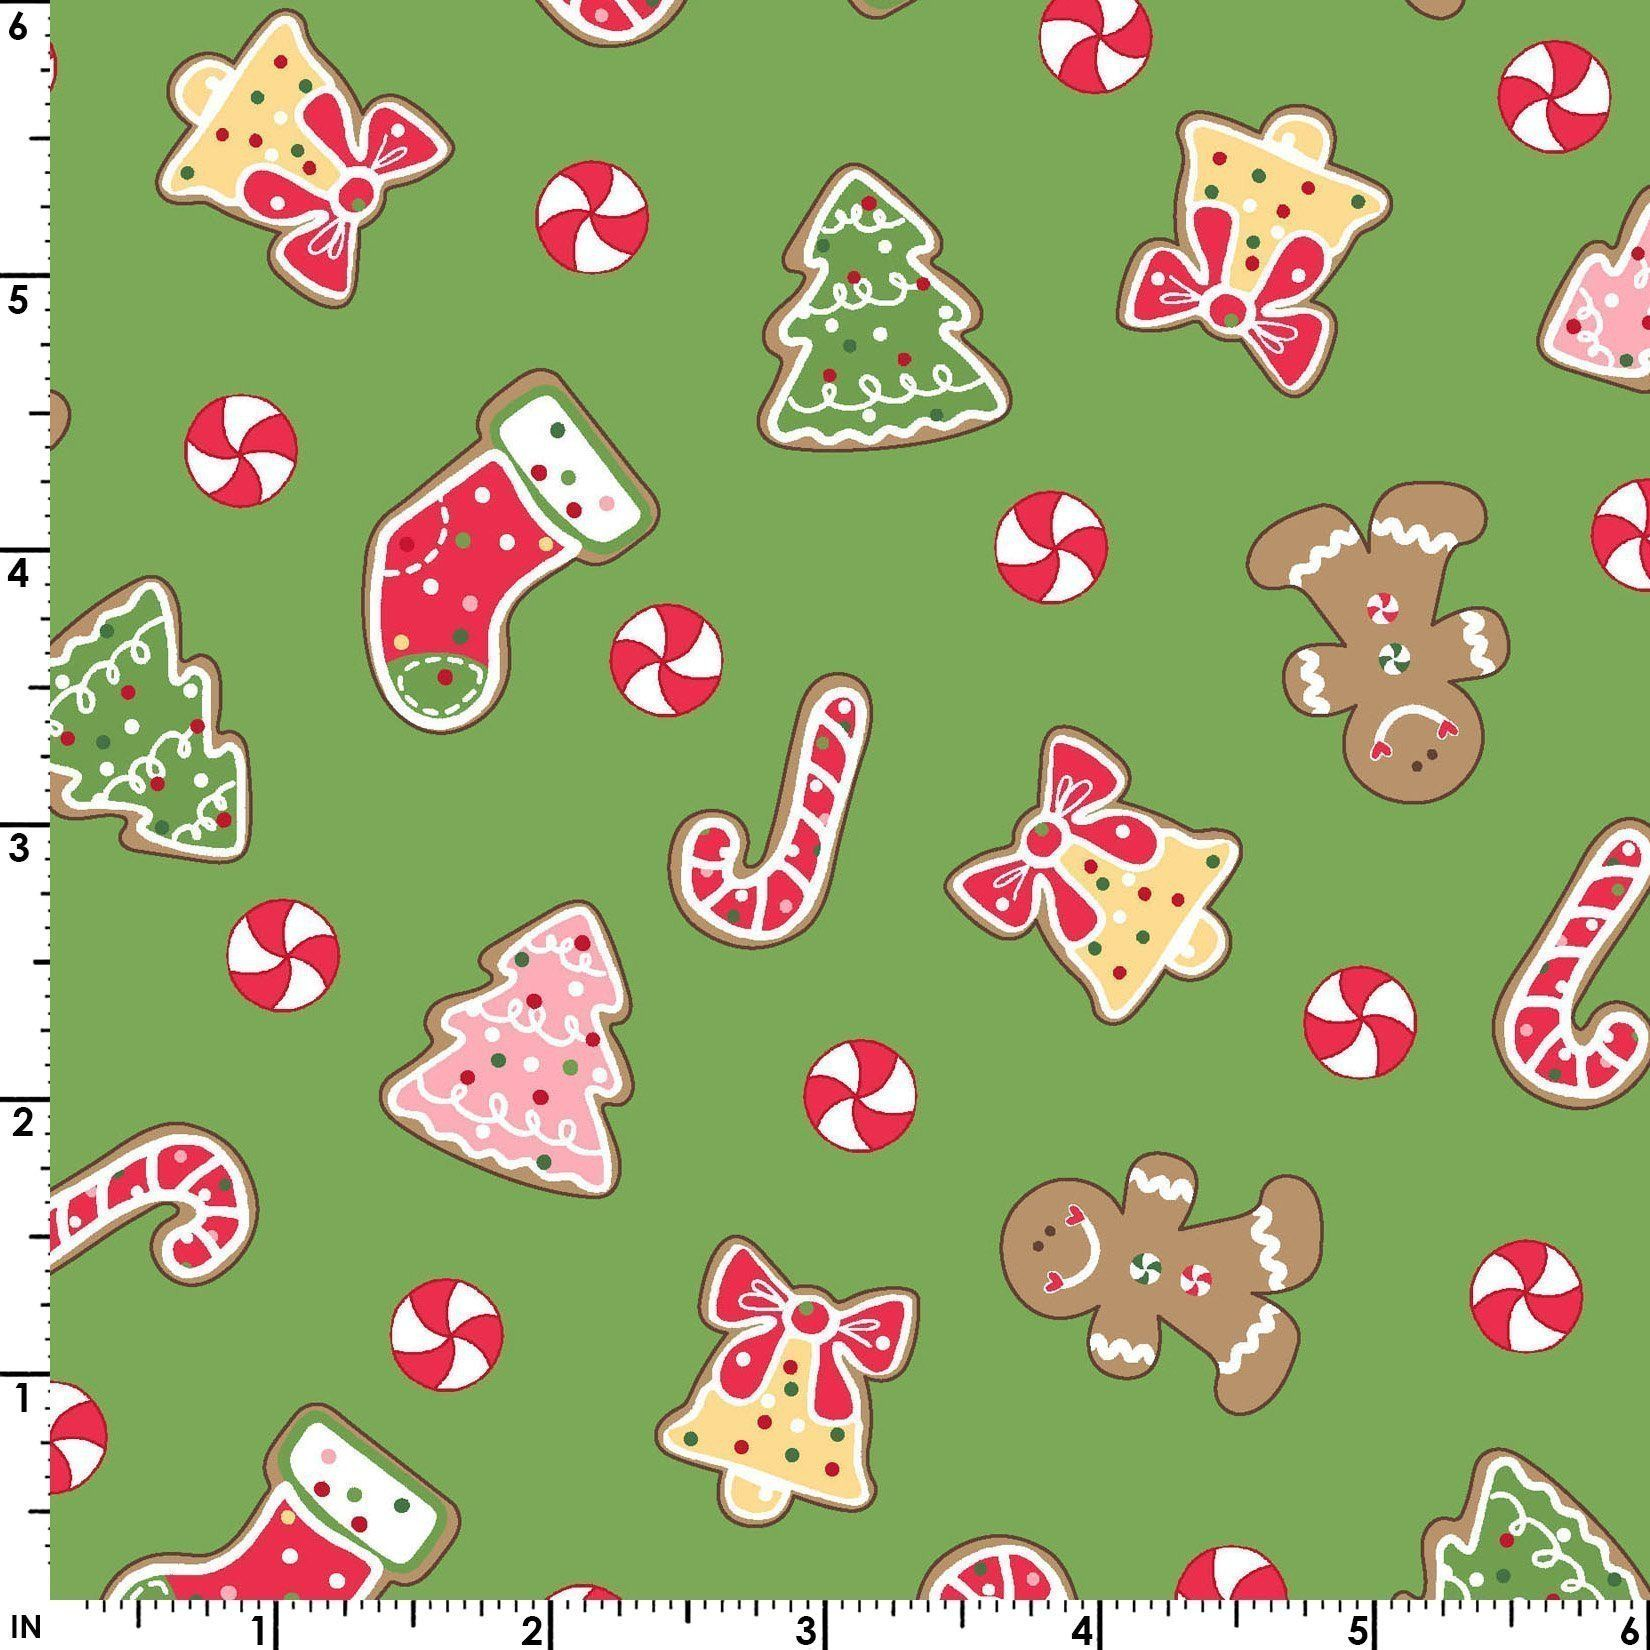 Kimberbell fabric per yard We Wisk You a Merry Christmas